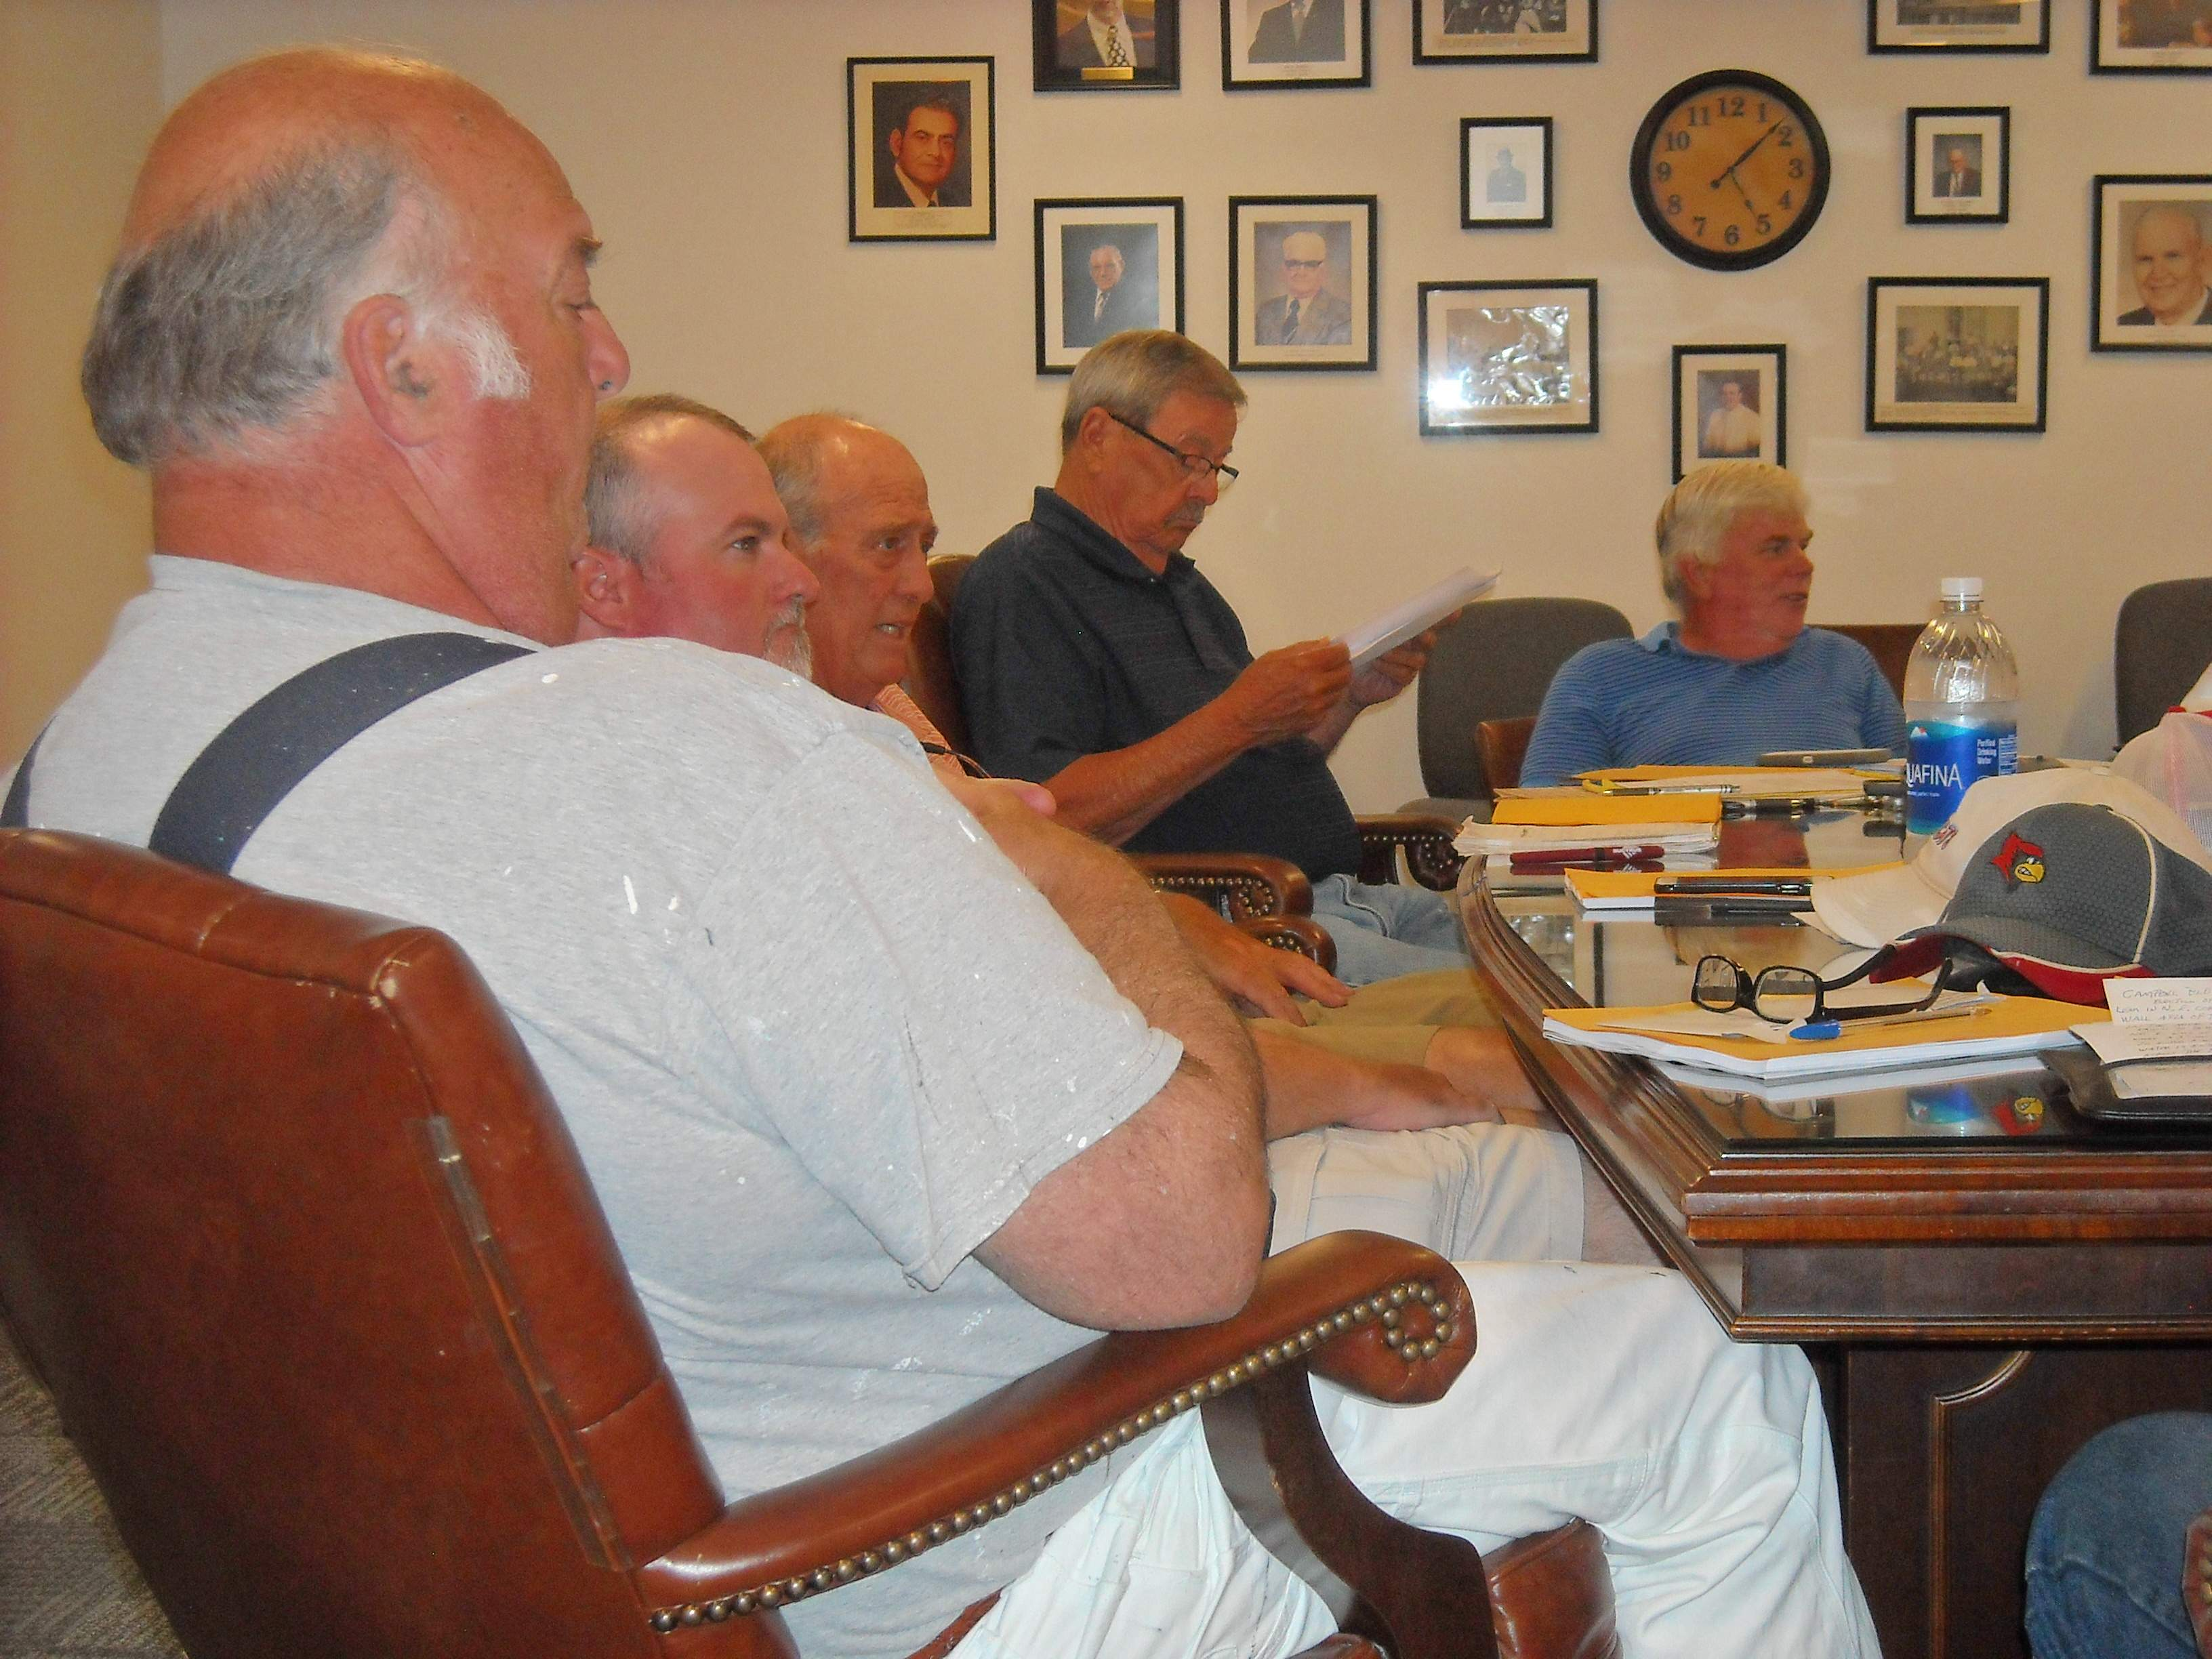 Franklin County Board members discussed several topics during committee meetings Monday in the conference room at the Campbell Building. From left are Jack Warren, Neil Hargis, Tom Vaughn, Keith Ward and Chairman Randall Crocker.